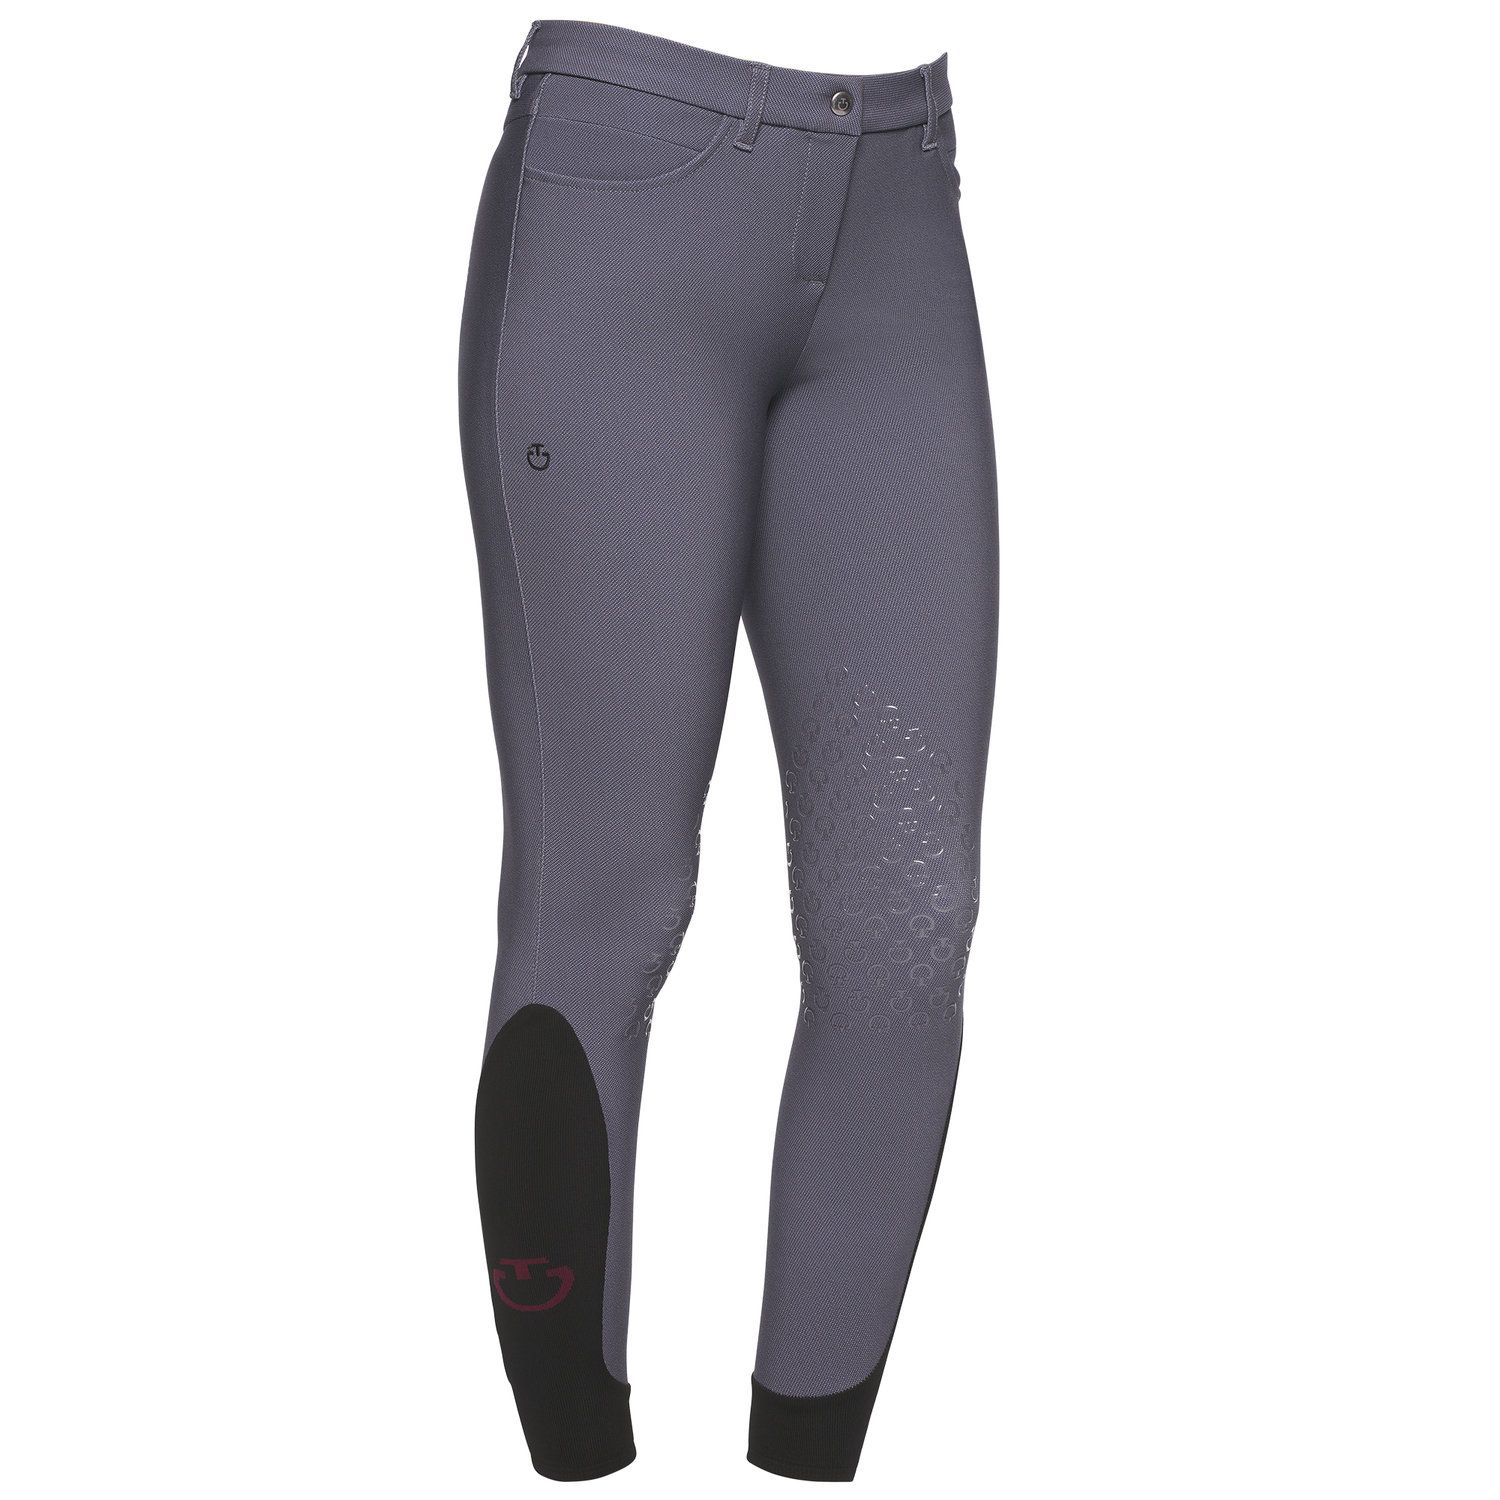 Women's knee grip riding breeches.